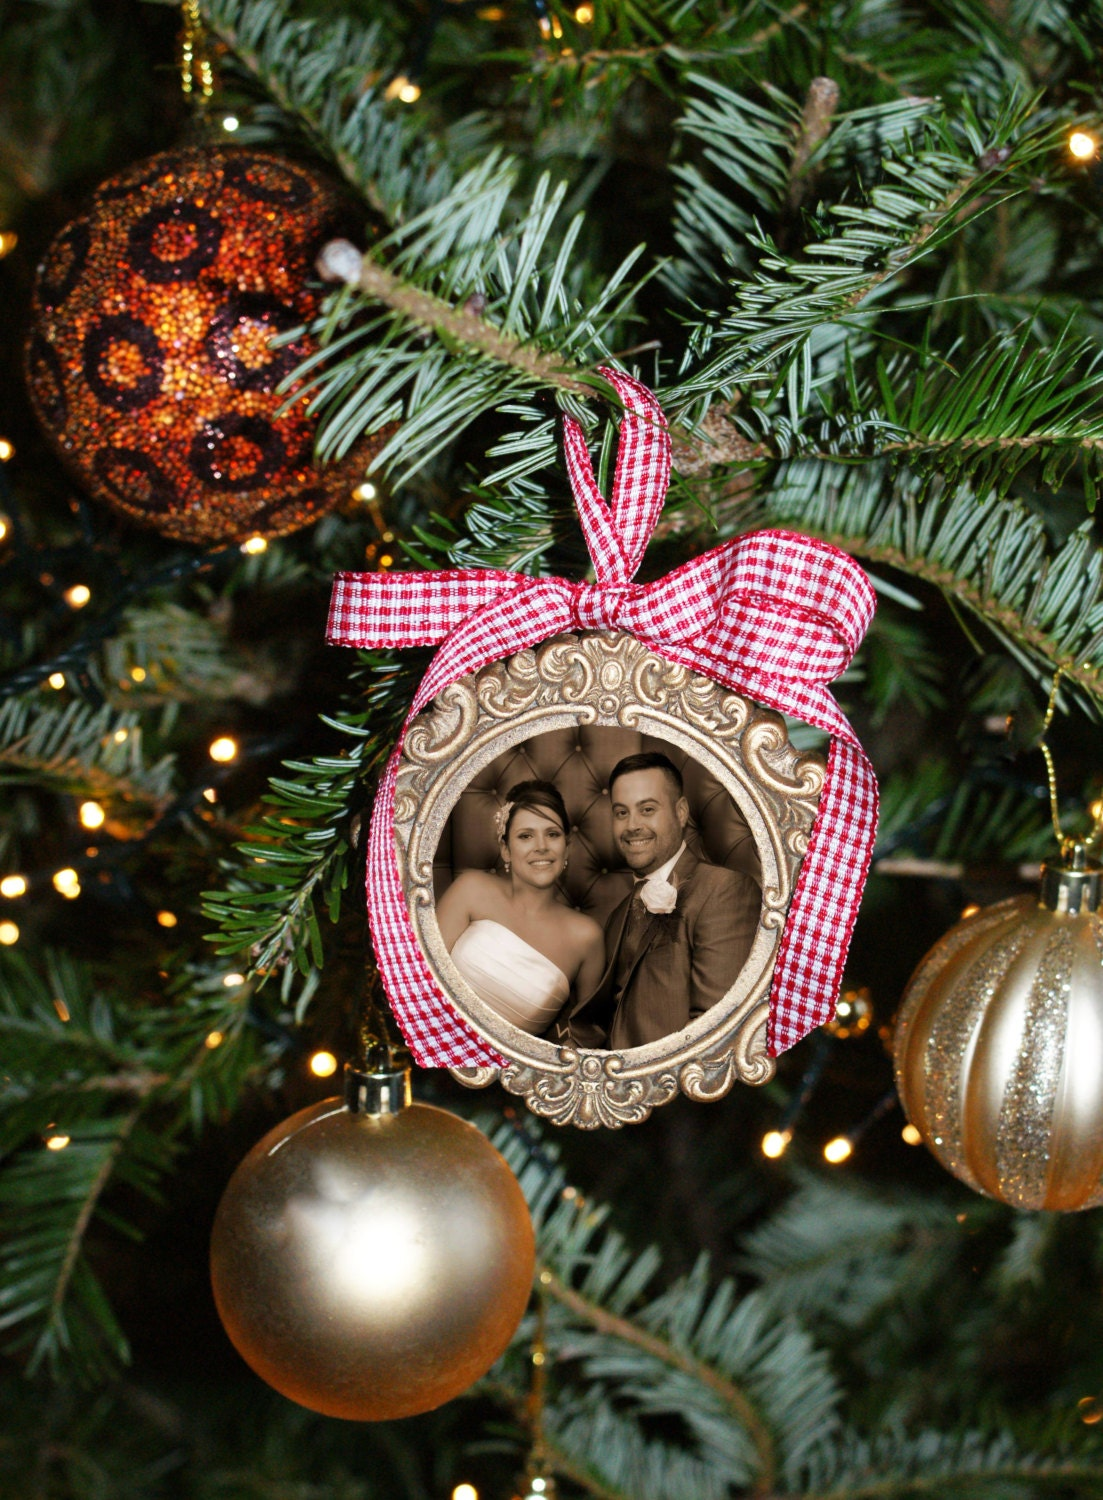 Mr and mrs christmas tree decoration - Sold By Tiffanyleighstudios